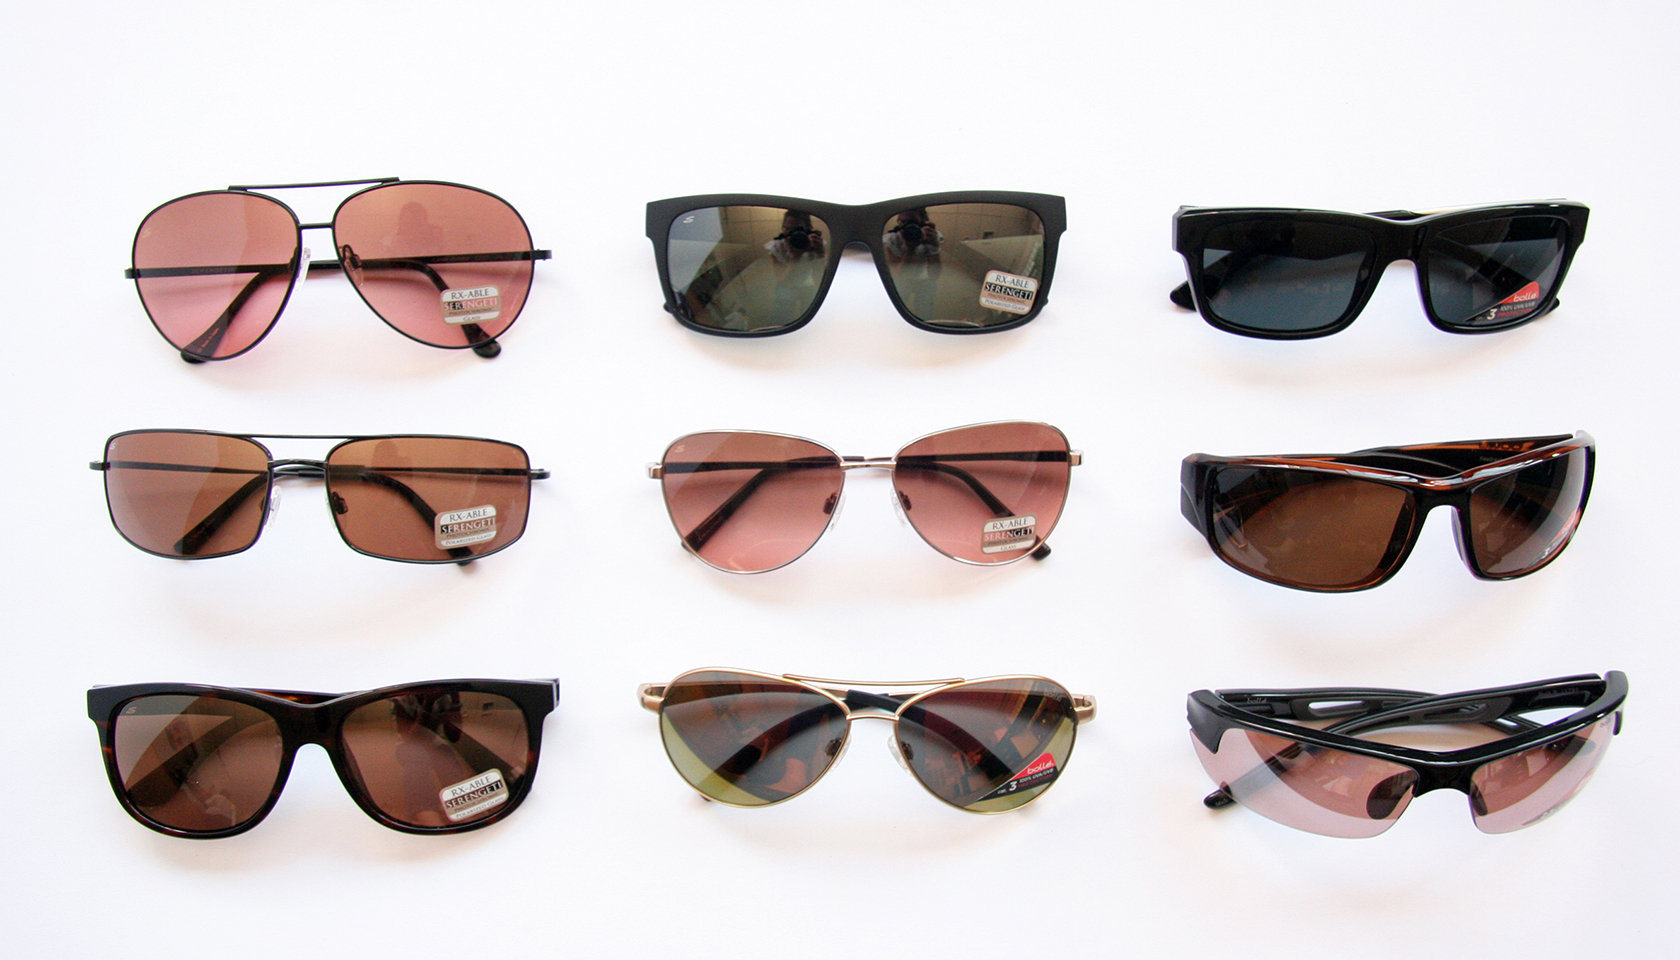 Serengeti ready to wear and prescription sunglasses at Hillcrest Optical